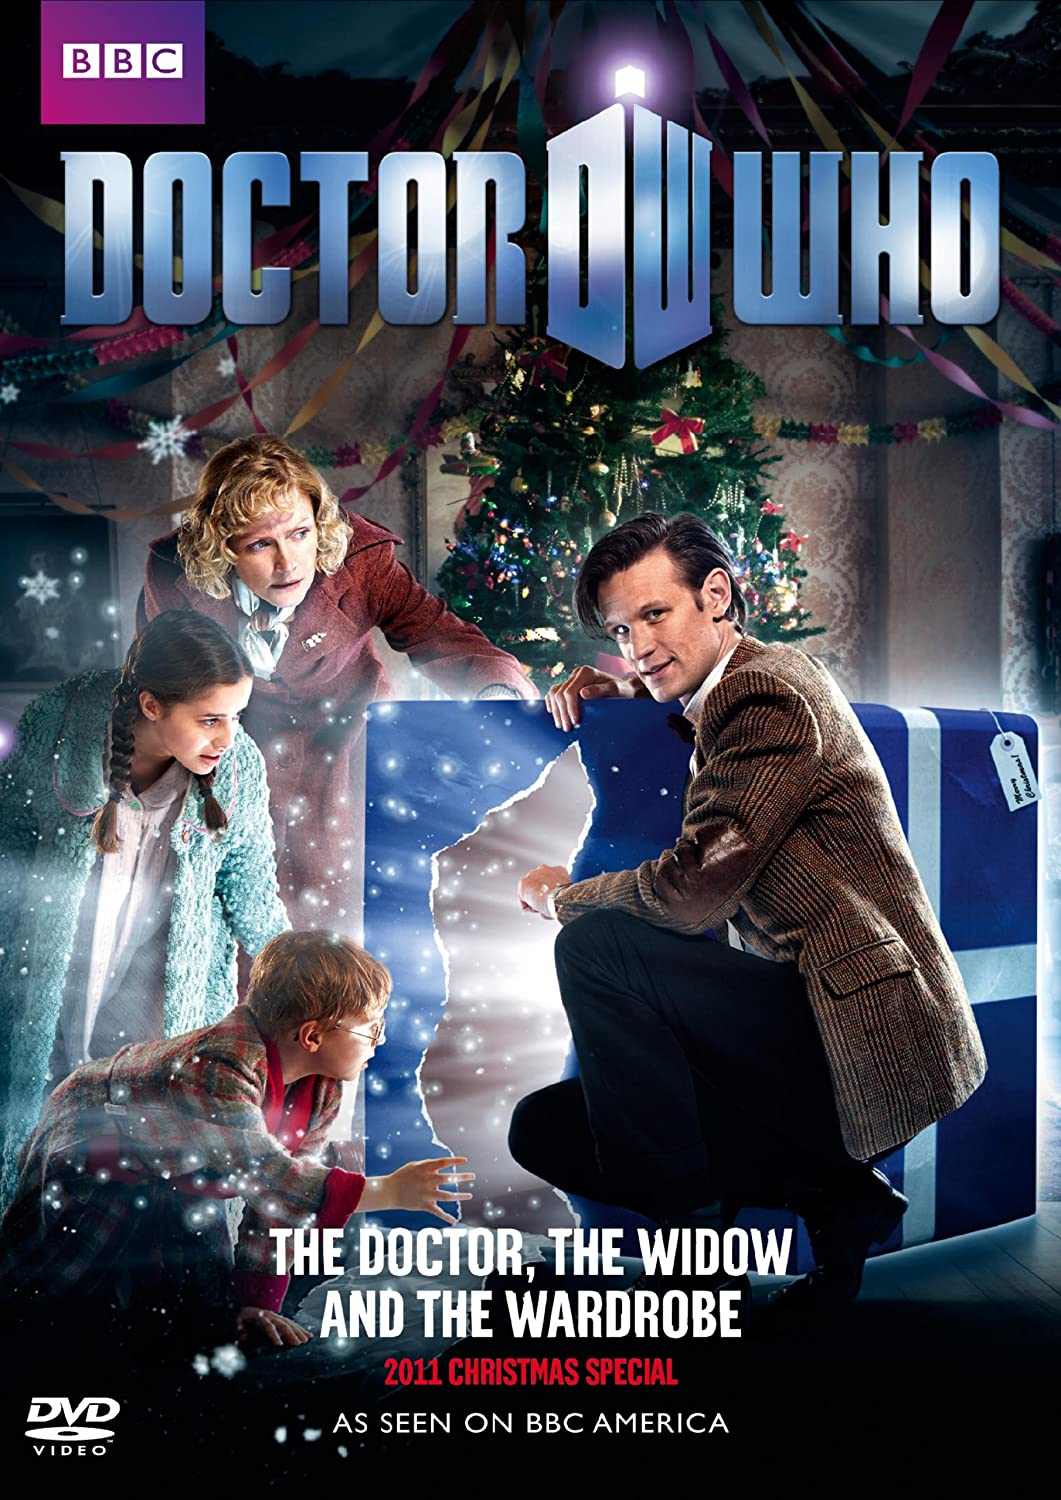 Image result for Doctor Who: A Christmas Carol and The Doctor, the Widow, and the Wardrobe, with Matt Smith as The Doctor